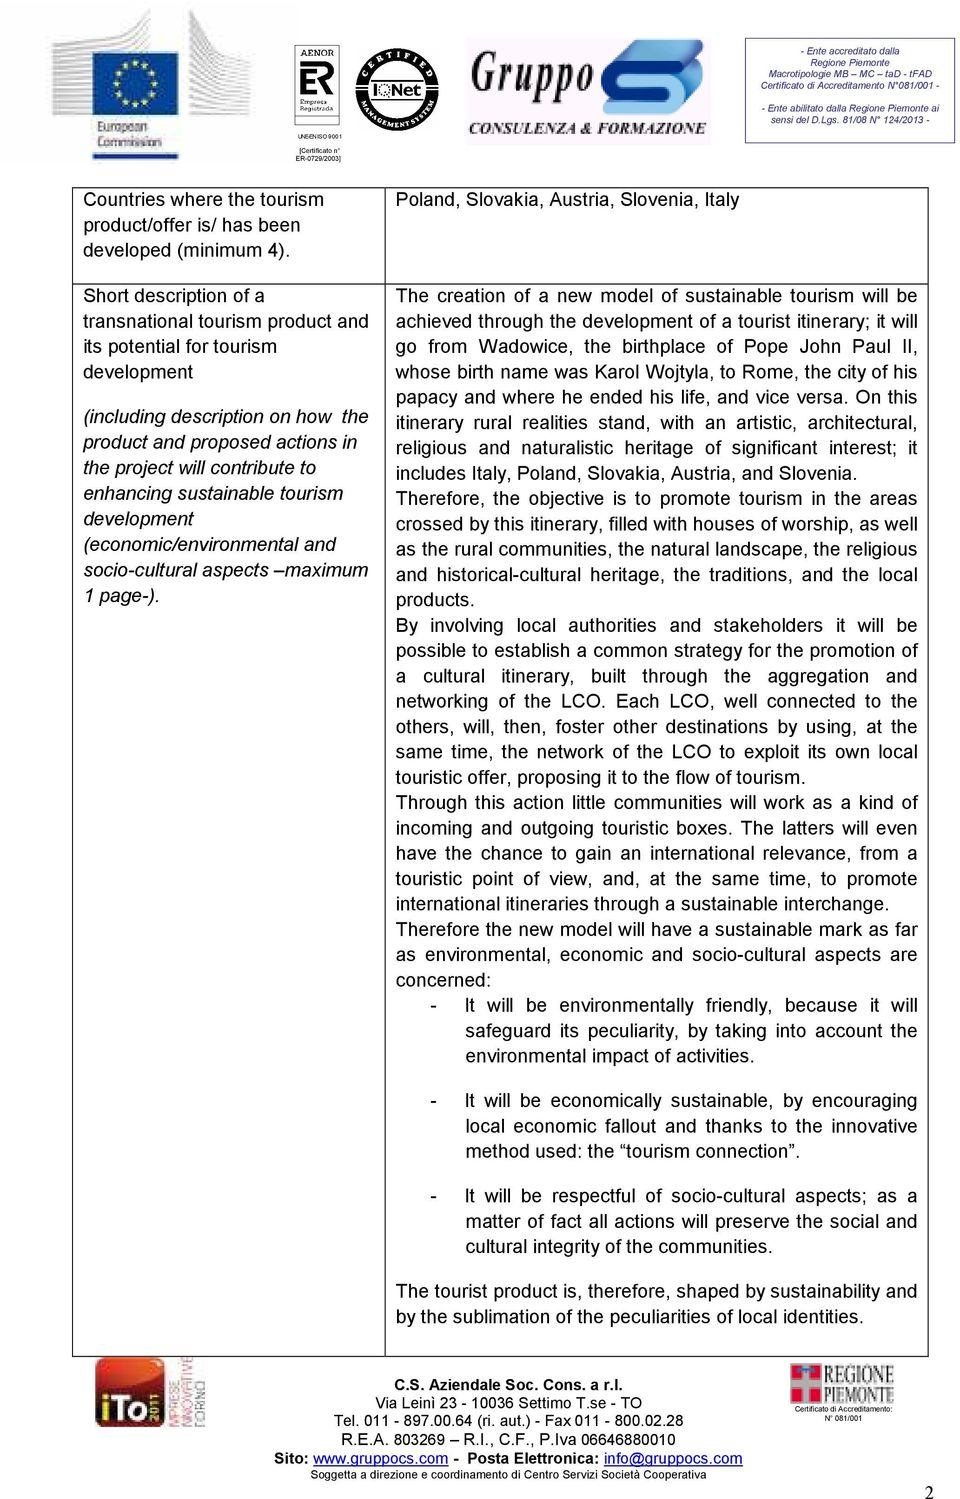 enhancing sustainable tourism development (economic/environmental and socio-cultural aspects maximum 1 page-).